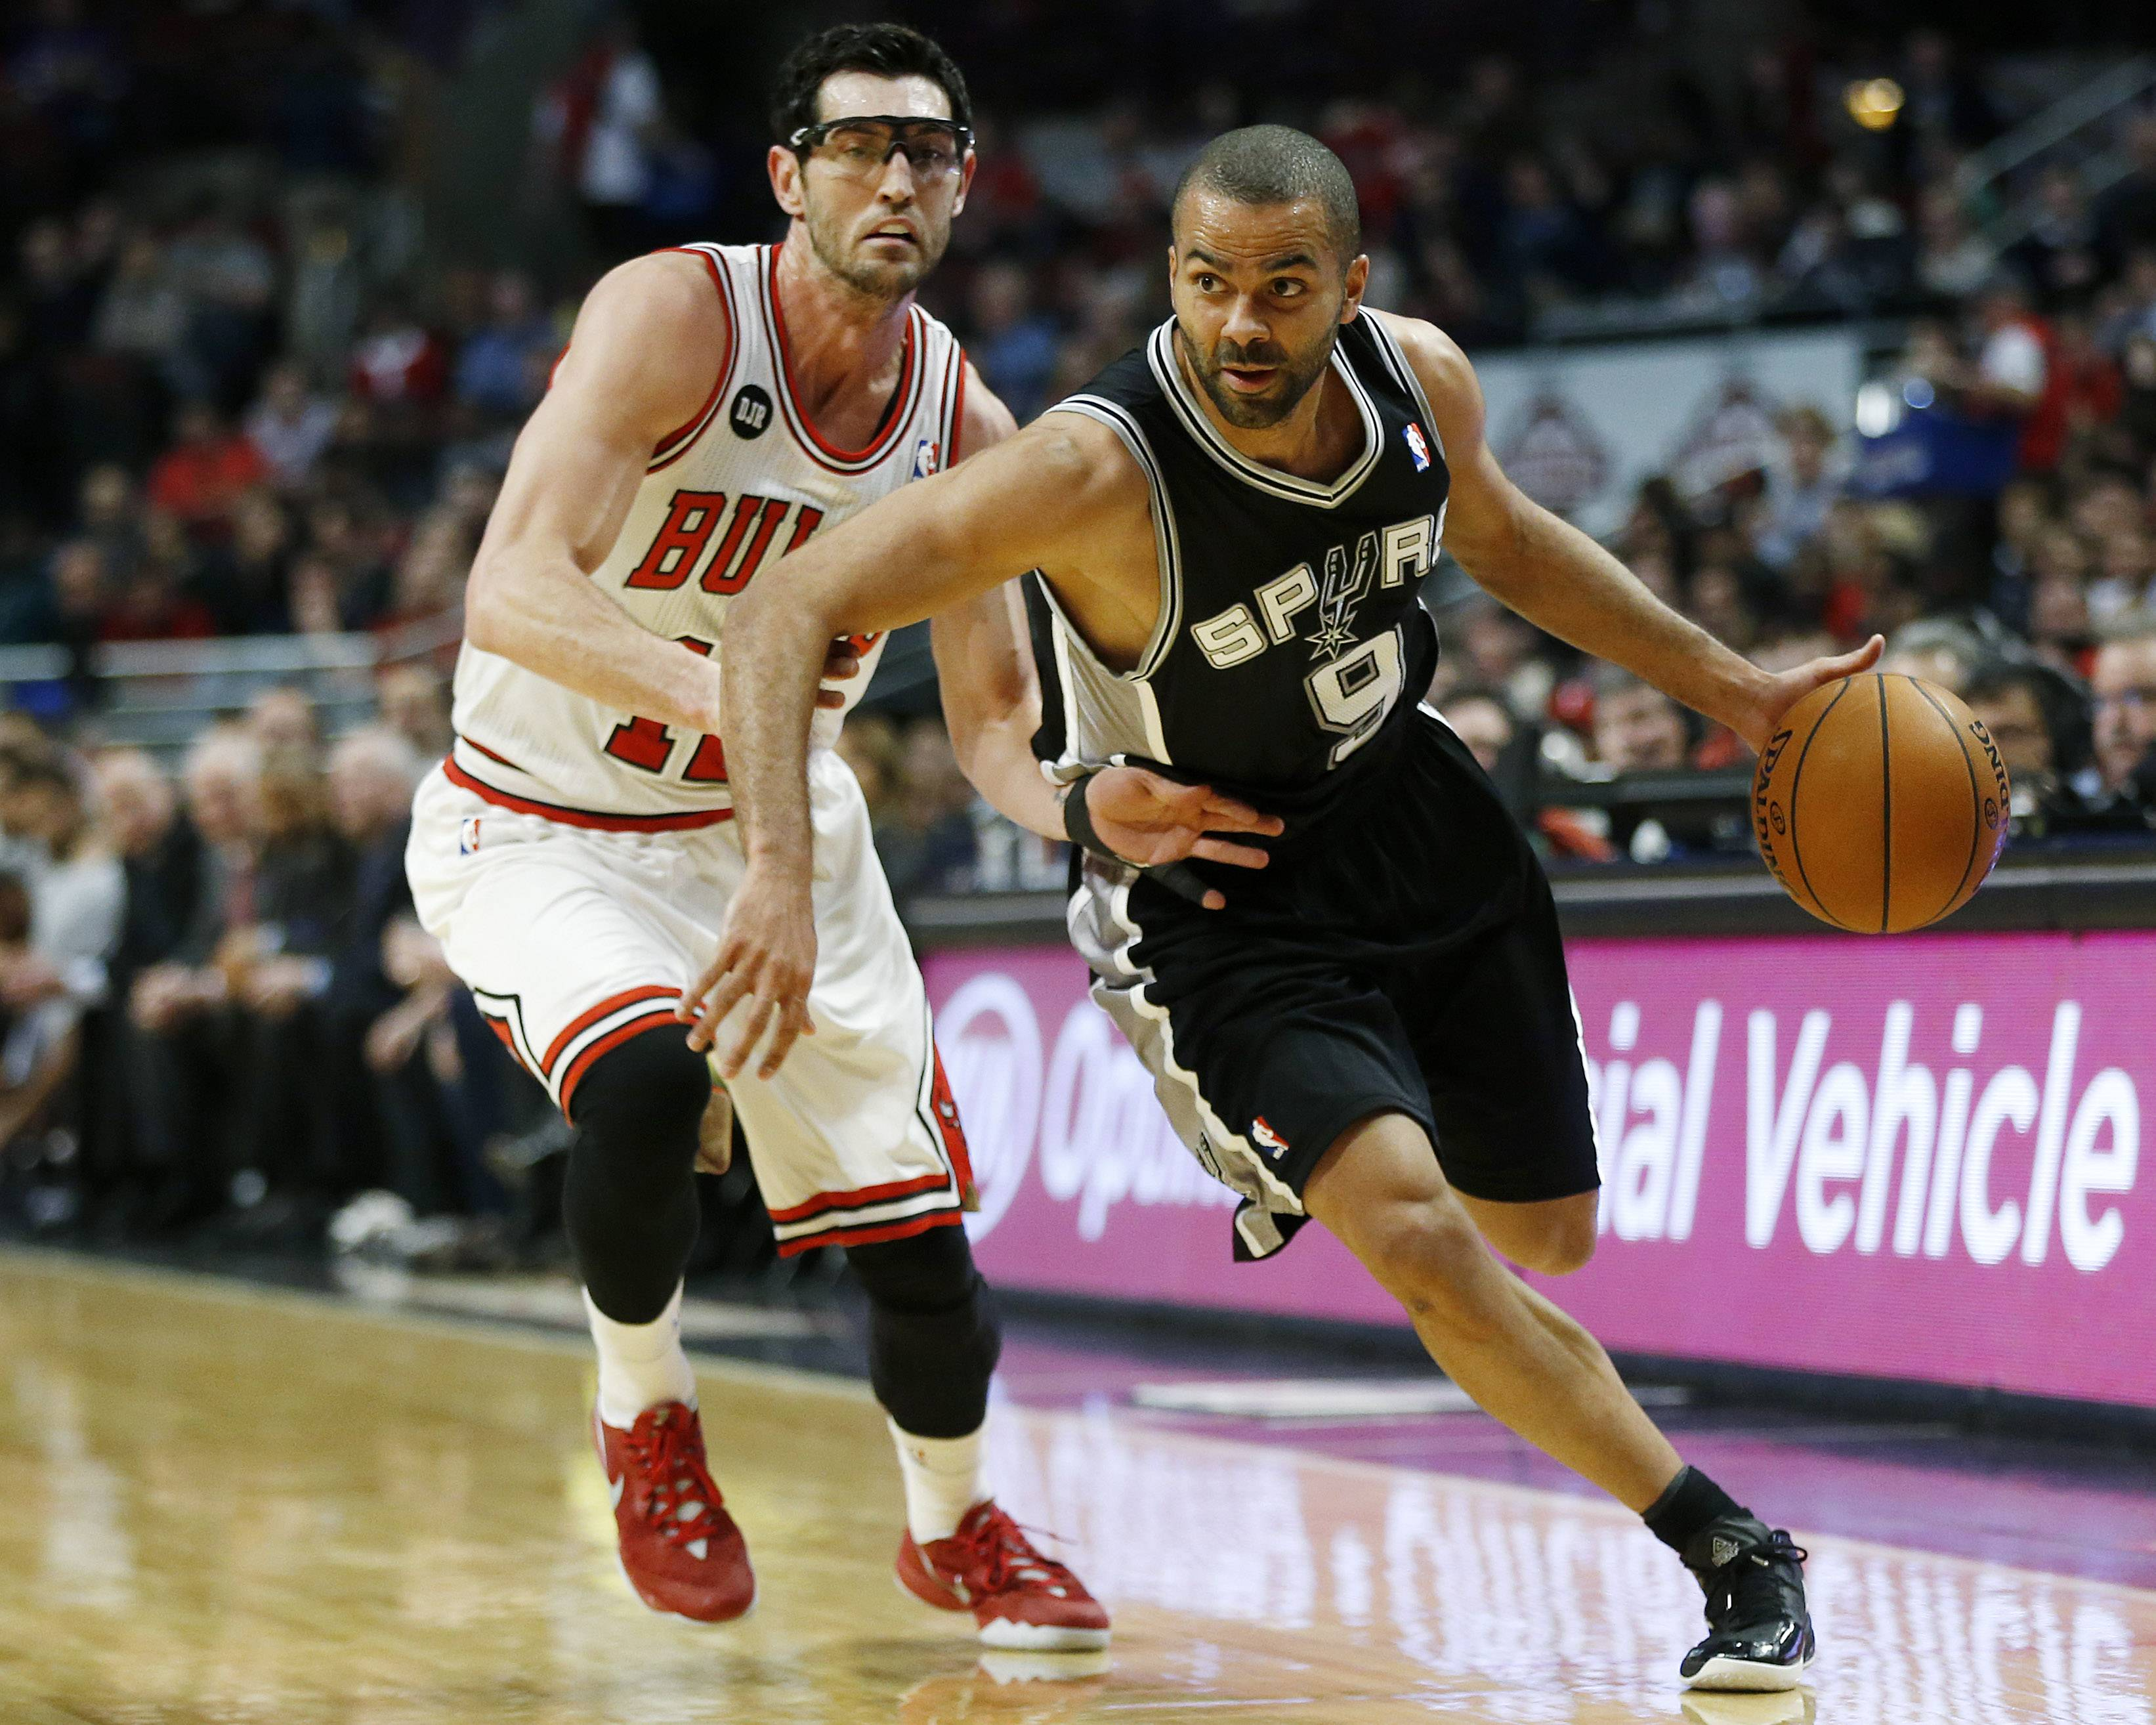 Spurs guard Tony Parker dribbles past the Bulls' Kirk Hinrich during the first half Tuesday night at the United Center. San Antonio led 38-14 after one quarter.